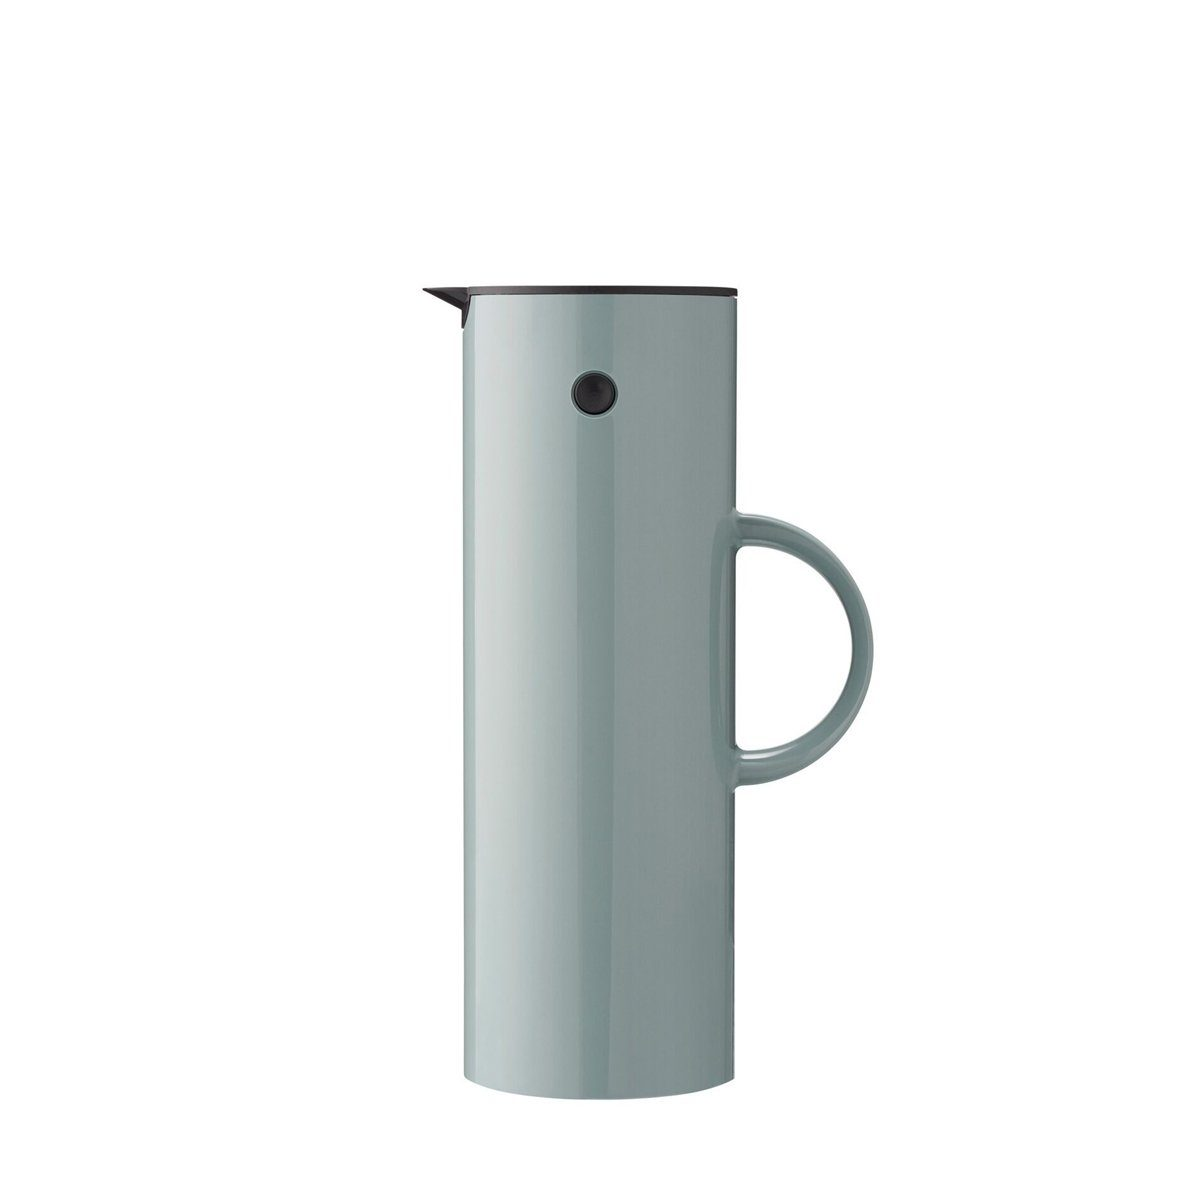 Stelton Isolierkanne Em77 Isolierkanne 1 L Dusty Green